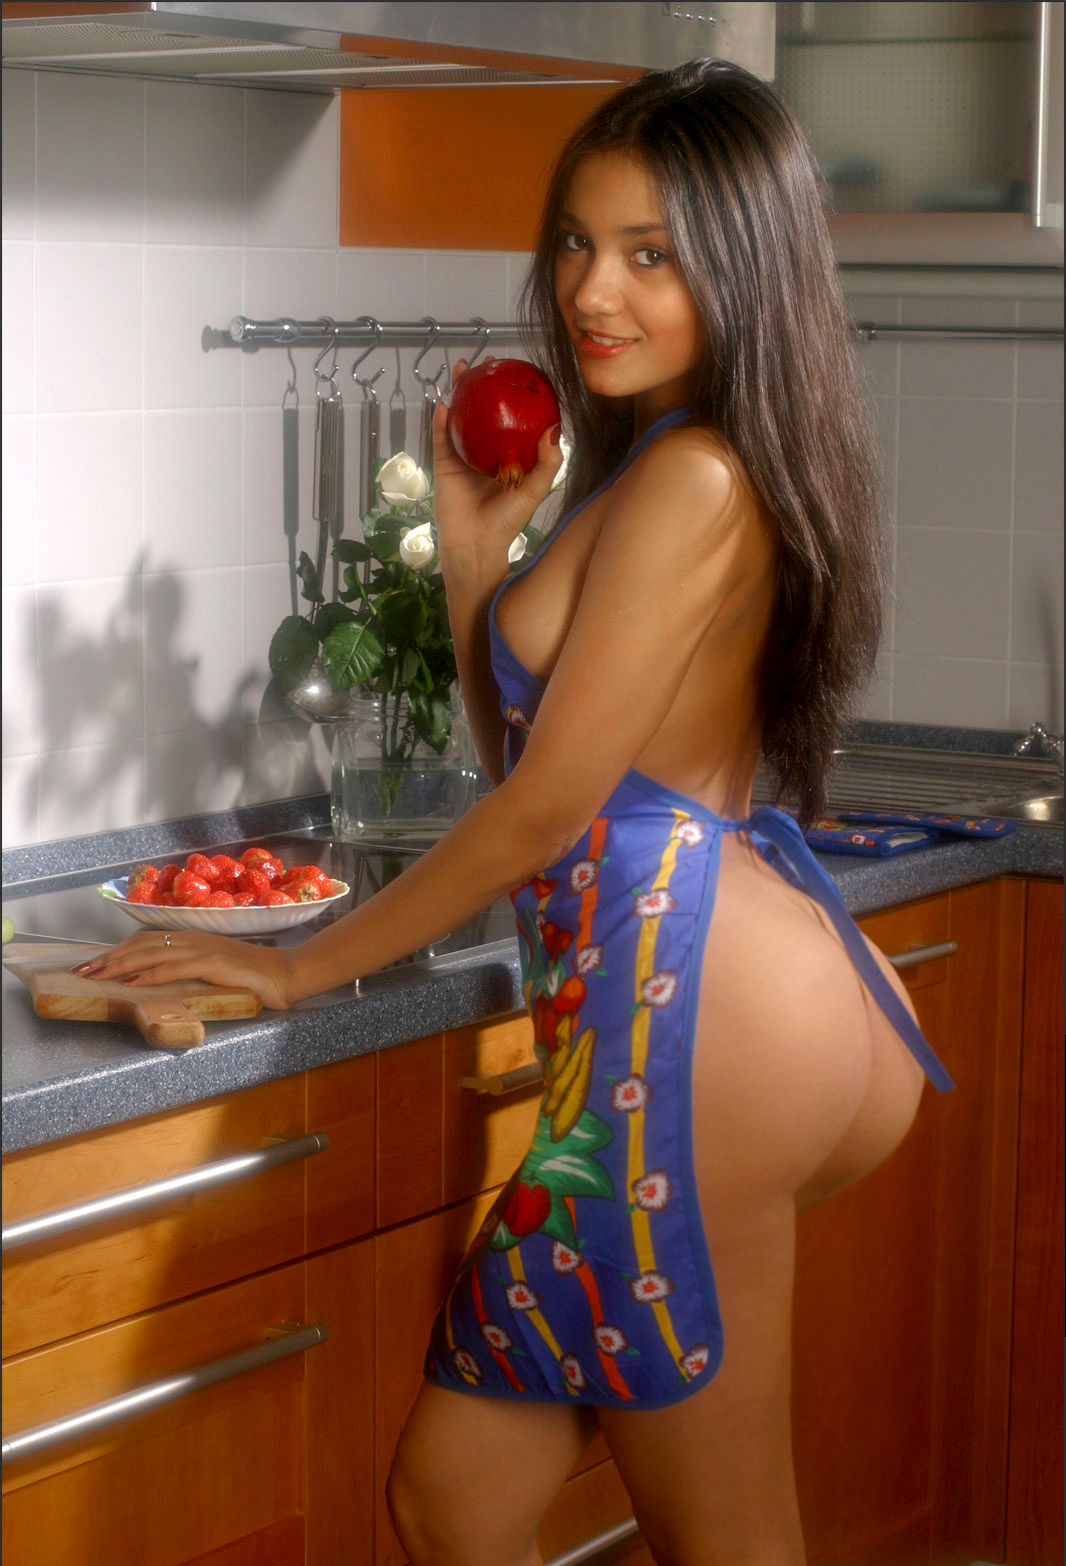 Apple bottom girls naked